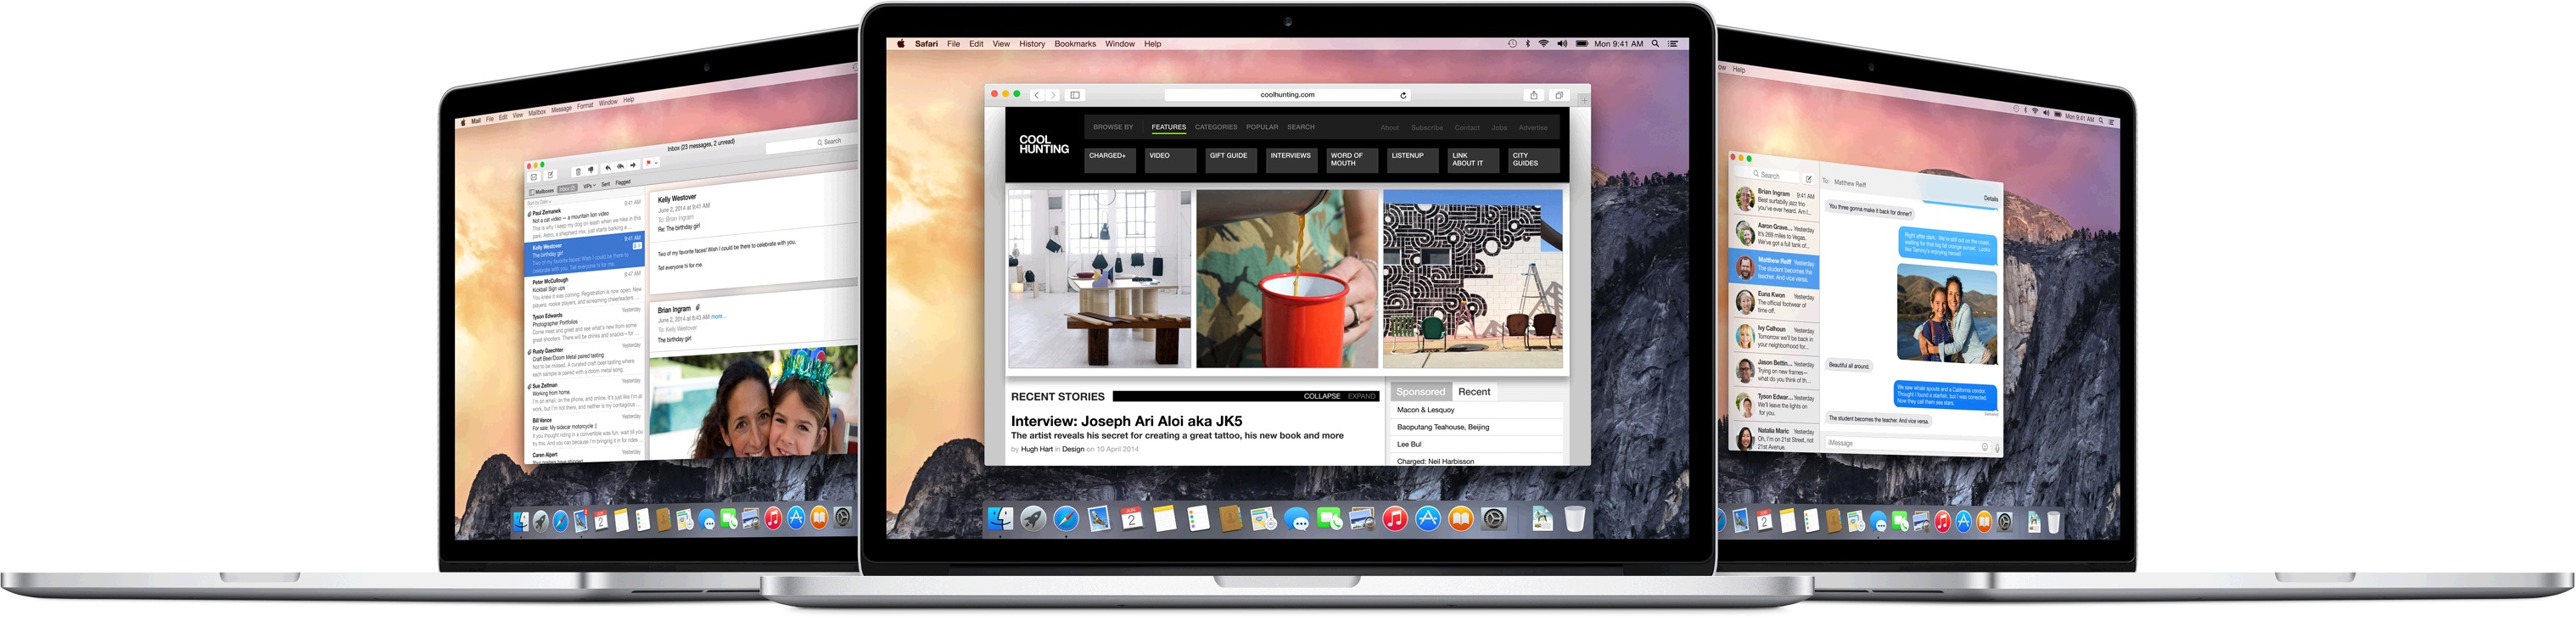 Check out the new look for OS X Yosemite and a collection of new features.